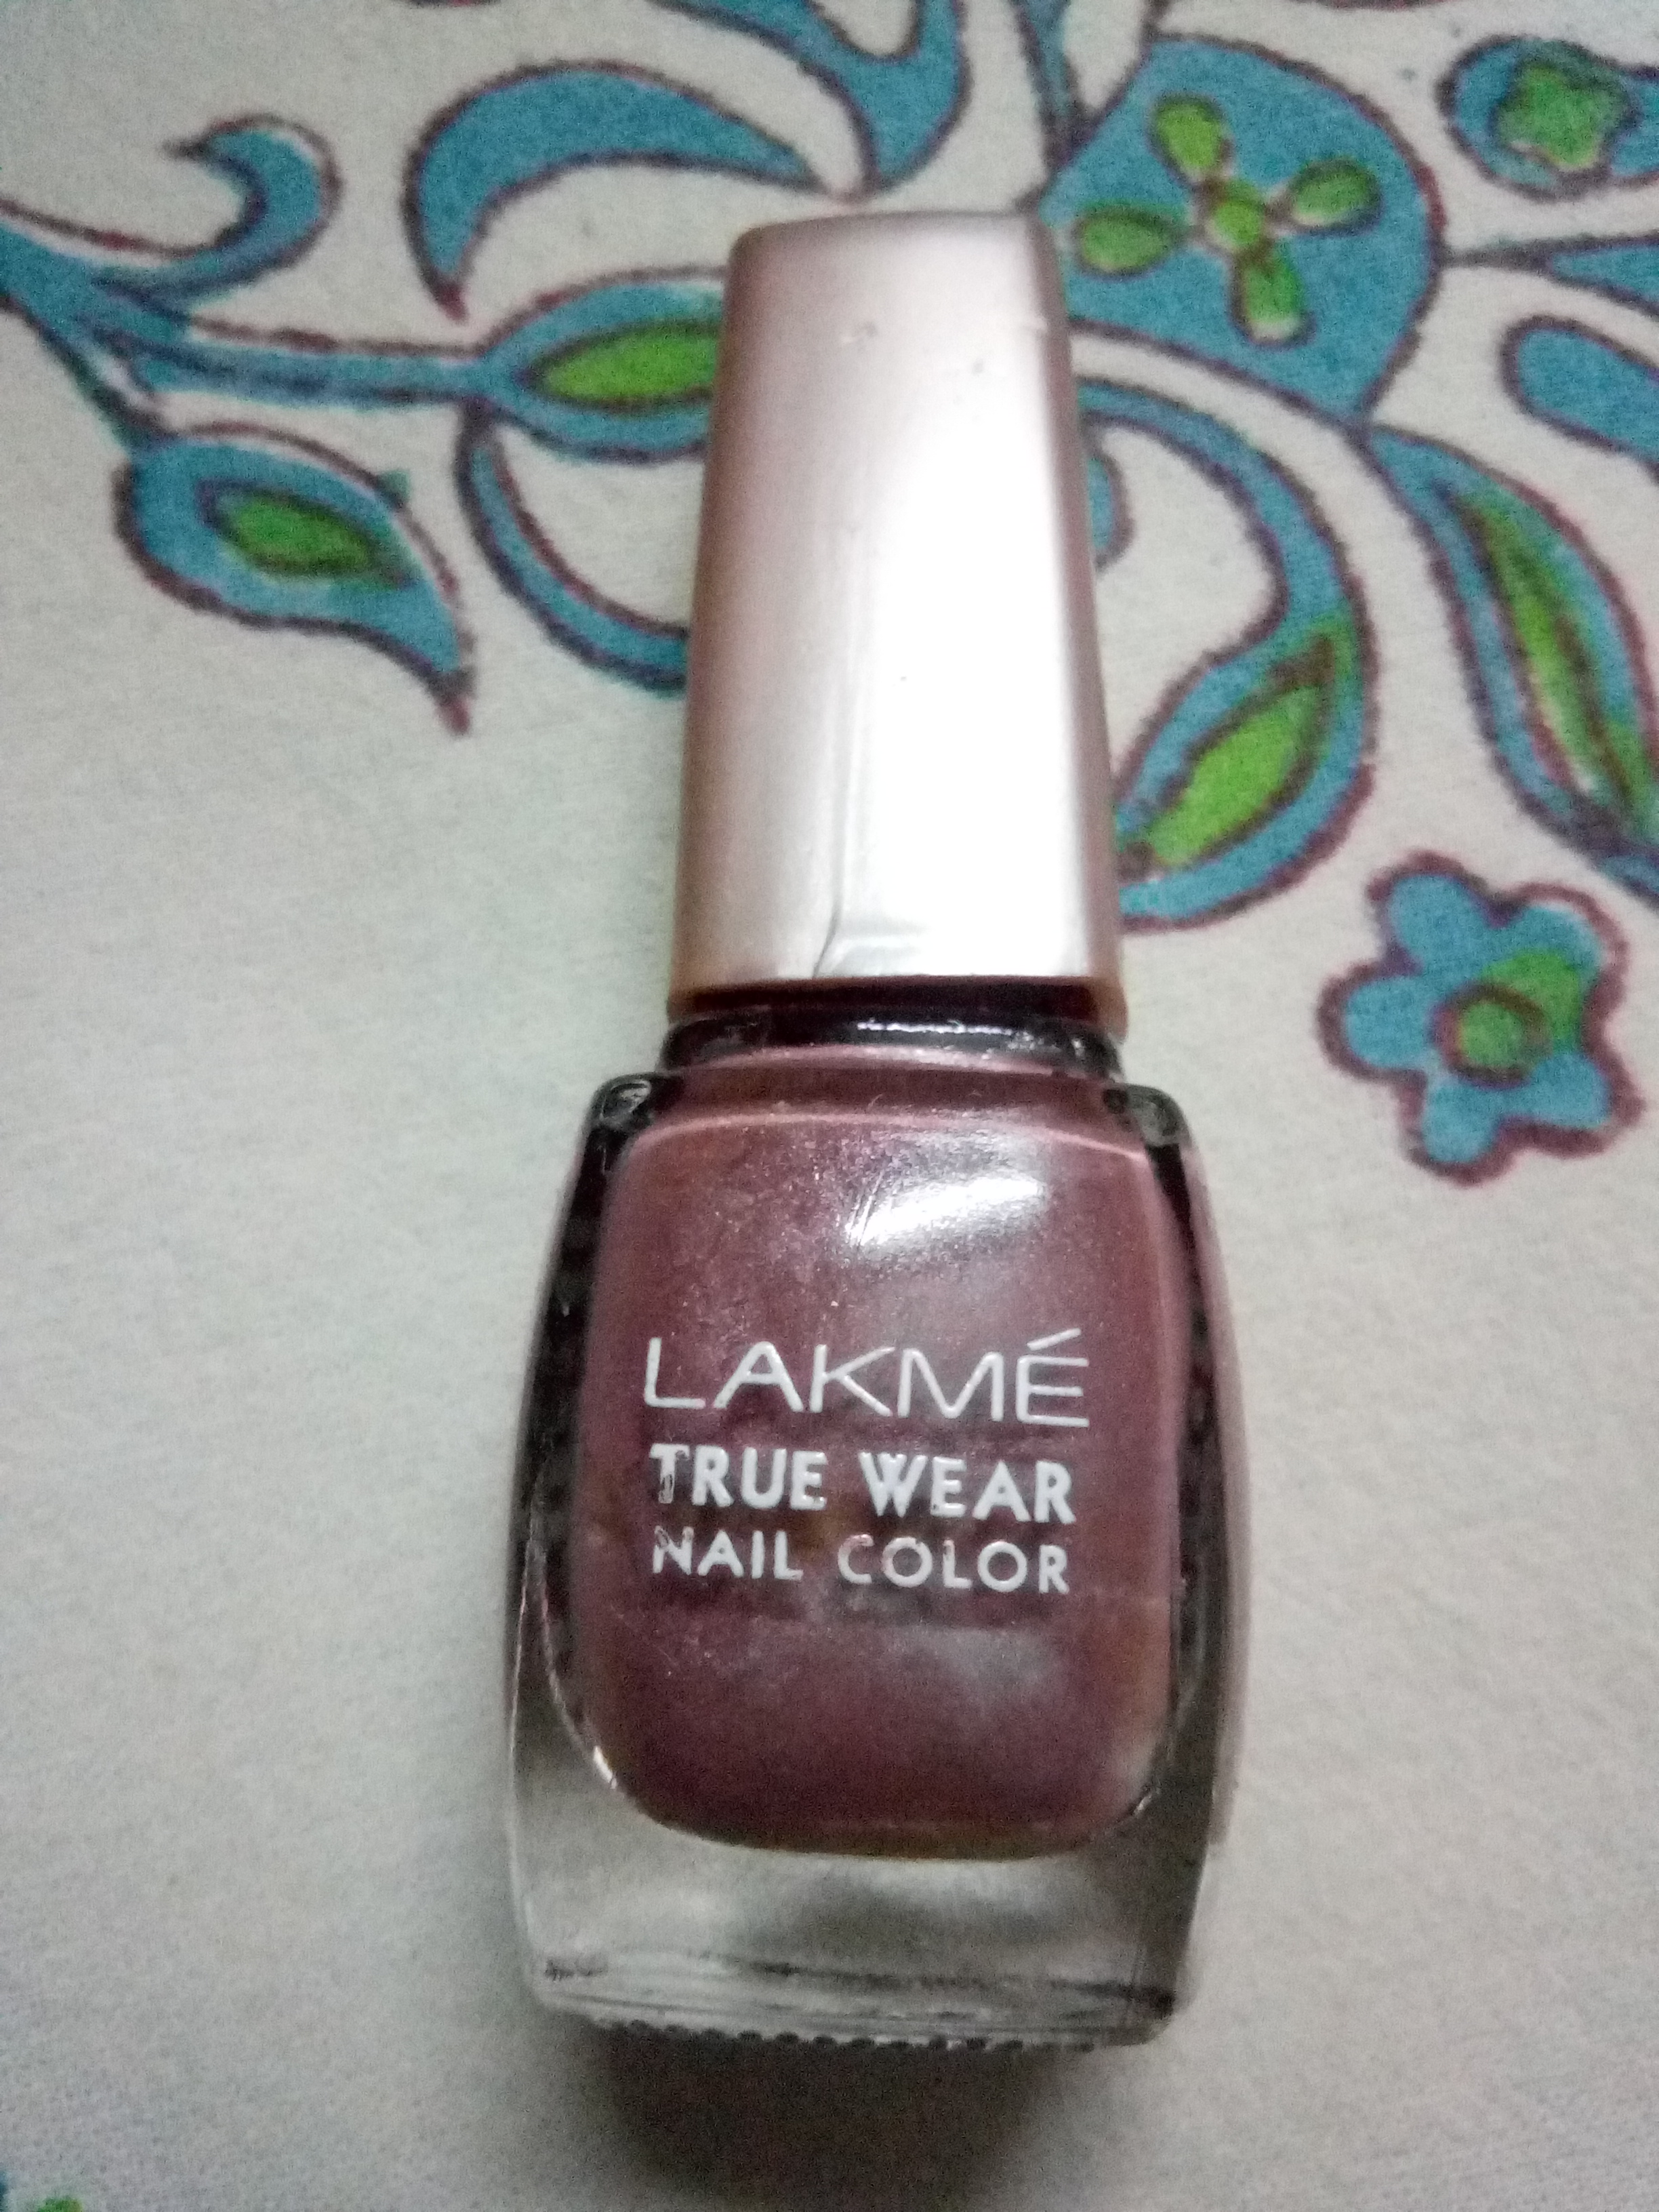 Lakme True Wear Nail Color-Lakme True Wear Nail Color-By aflyingsoul